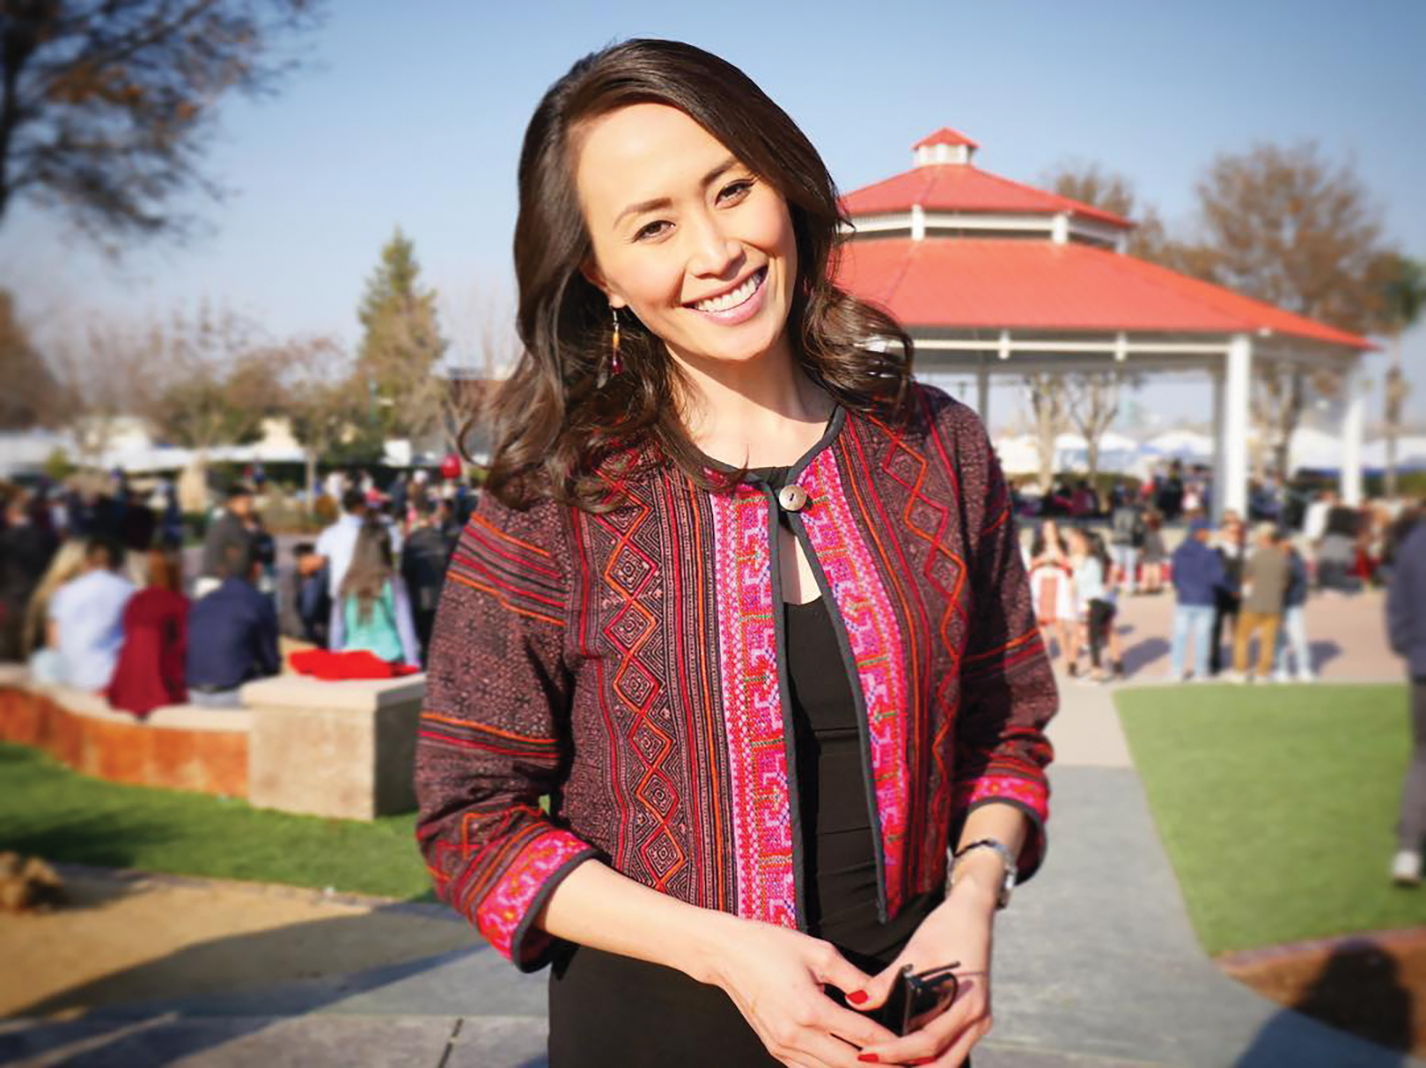 KARE 11 news anchor Gia Vang grew up celebrating Hmong New Year in California